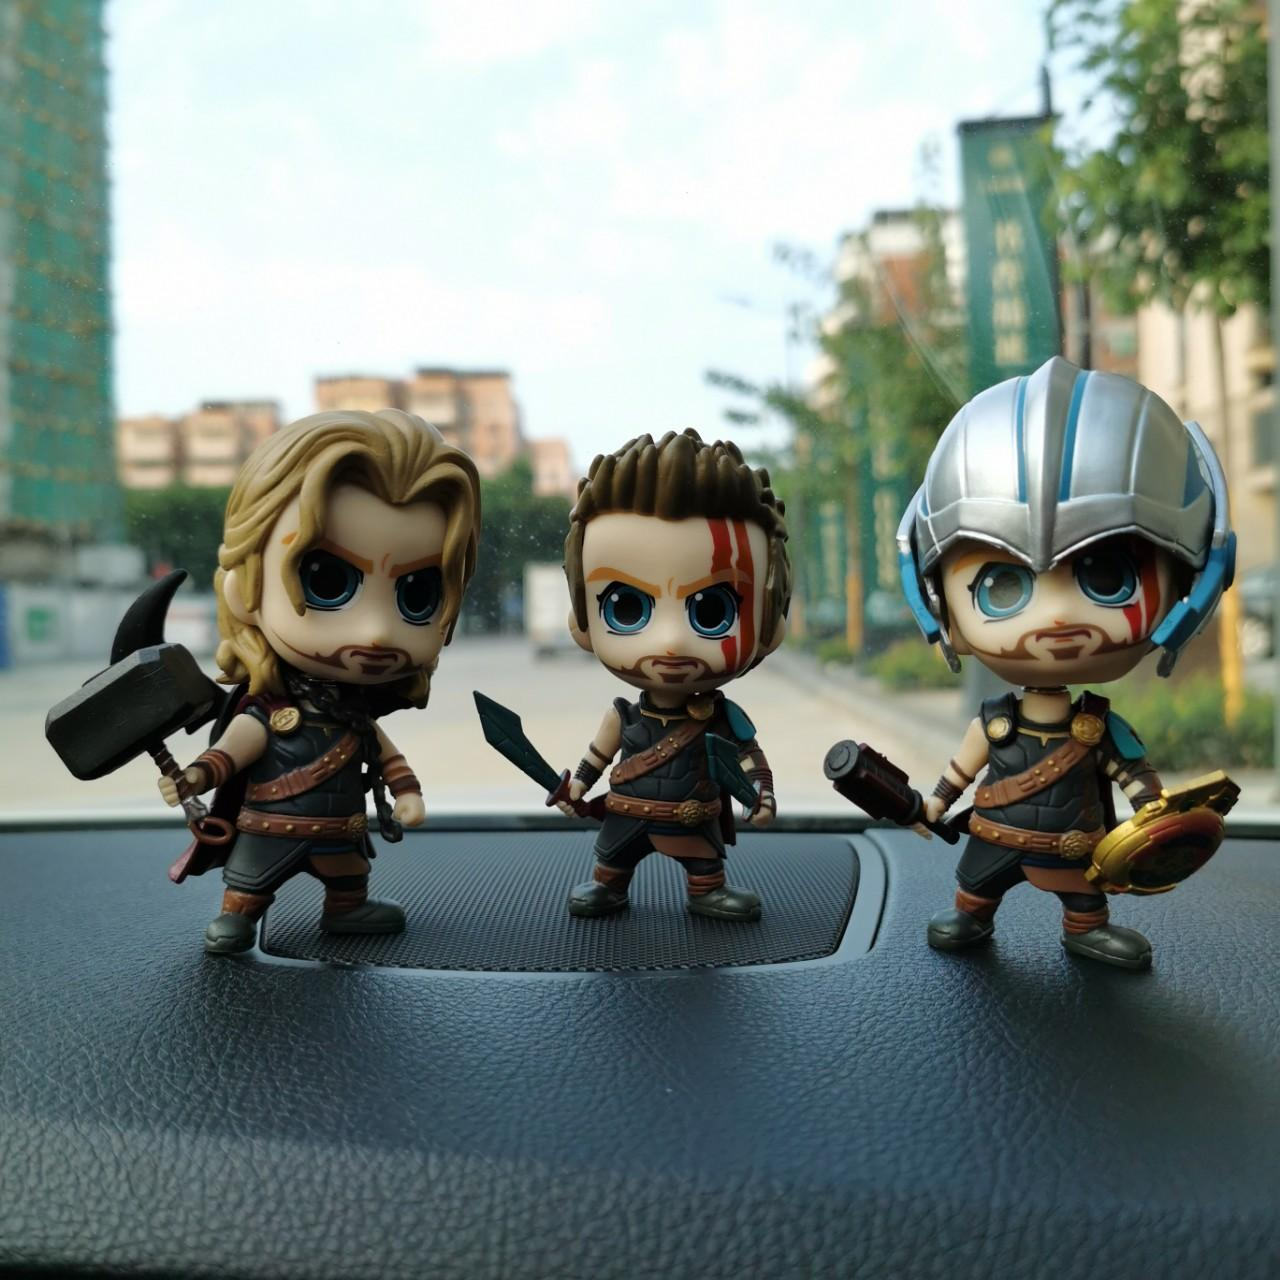 S Animated Q Version of Head Car Figures Avengers Four HT Hulk Rocky Land of Fire Thor Figures